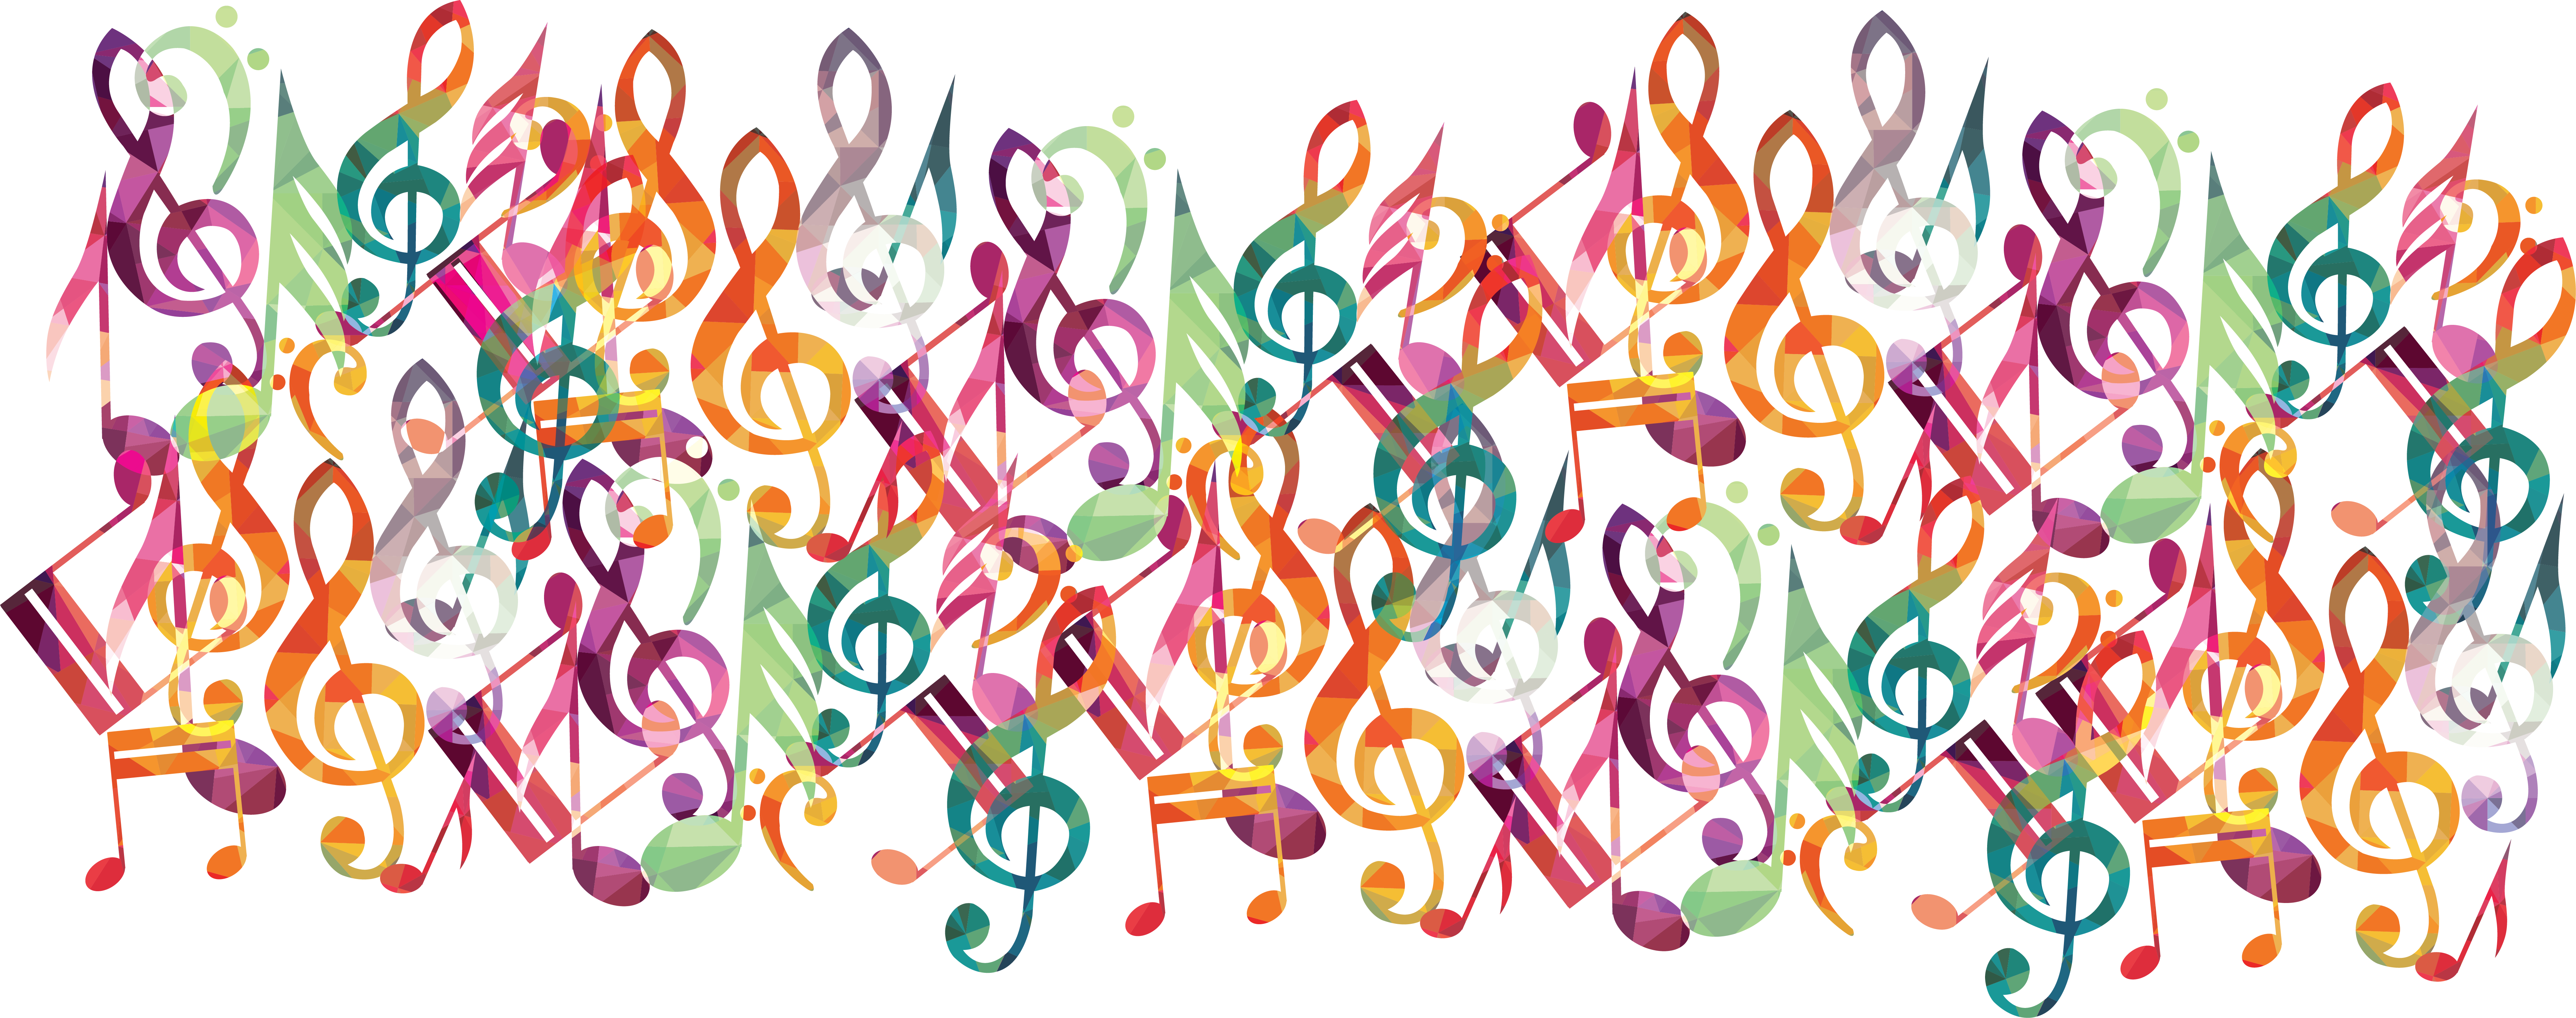 Graphic collage of music notes andd staffs in rainbow colors